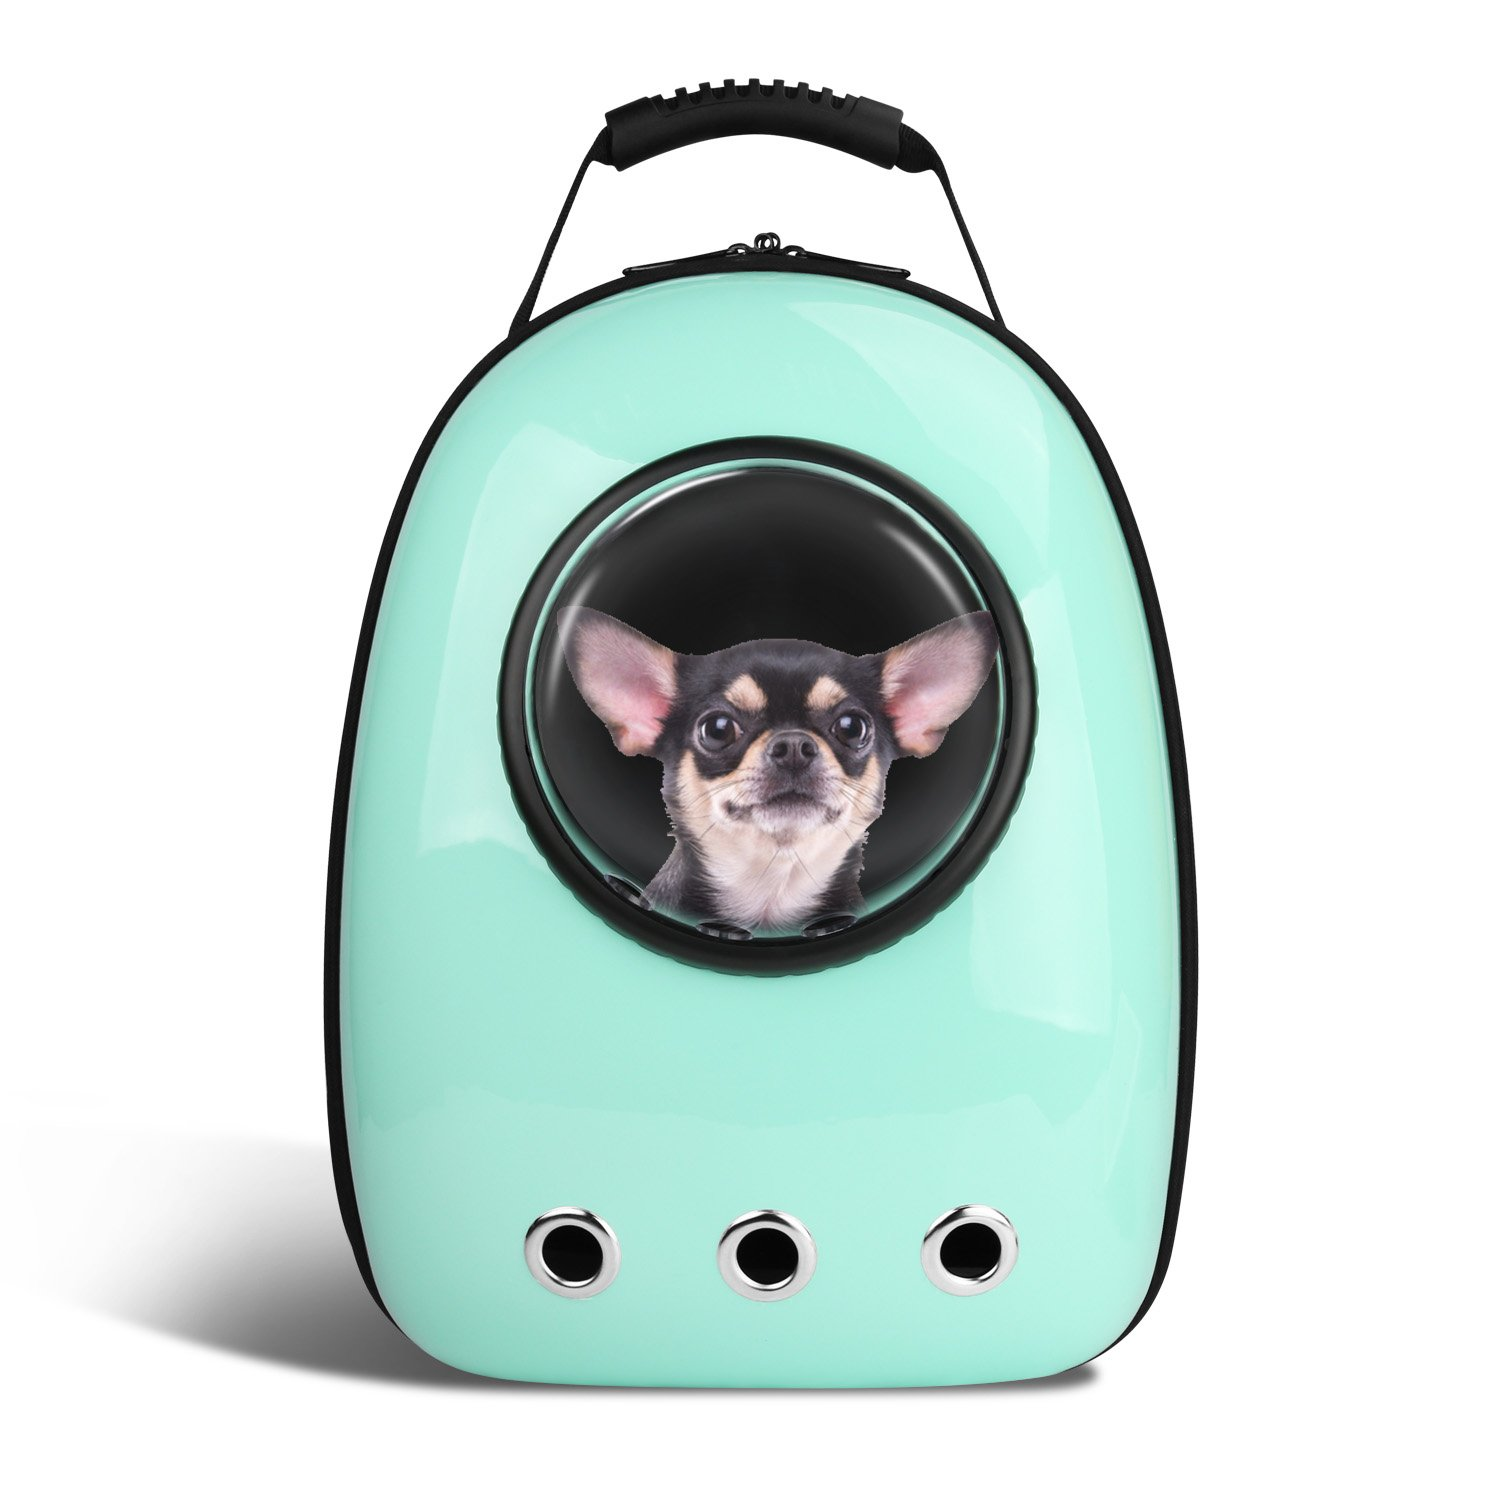 Cyan Anzone Pet Portable Carrier Space Capsule Backpack, Pet Bubble Traveler Knapsack Multiple Air Vents Waterproof Lightweight Handbag for Cats Small Dogs & Petite Animals-Cyan,30L